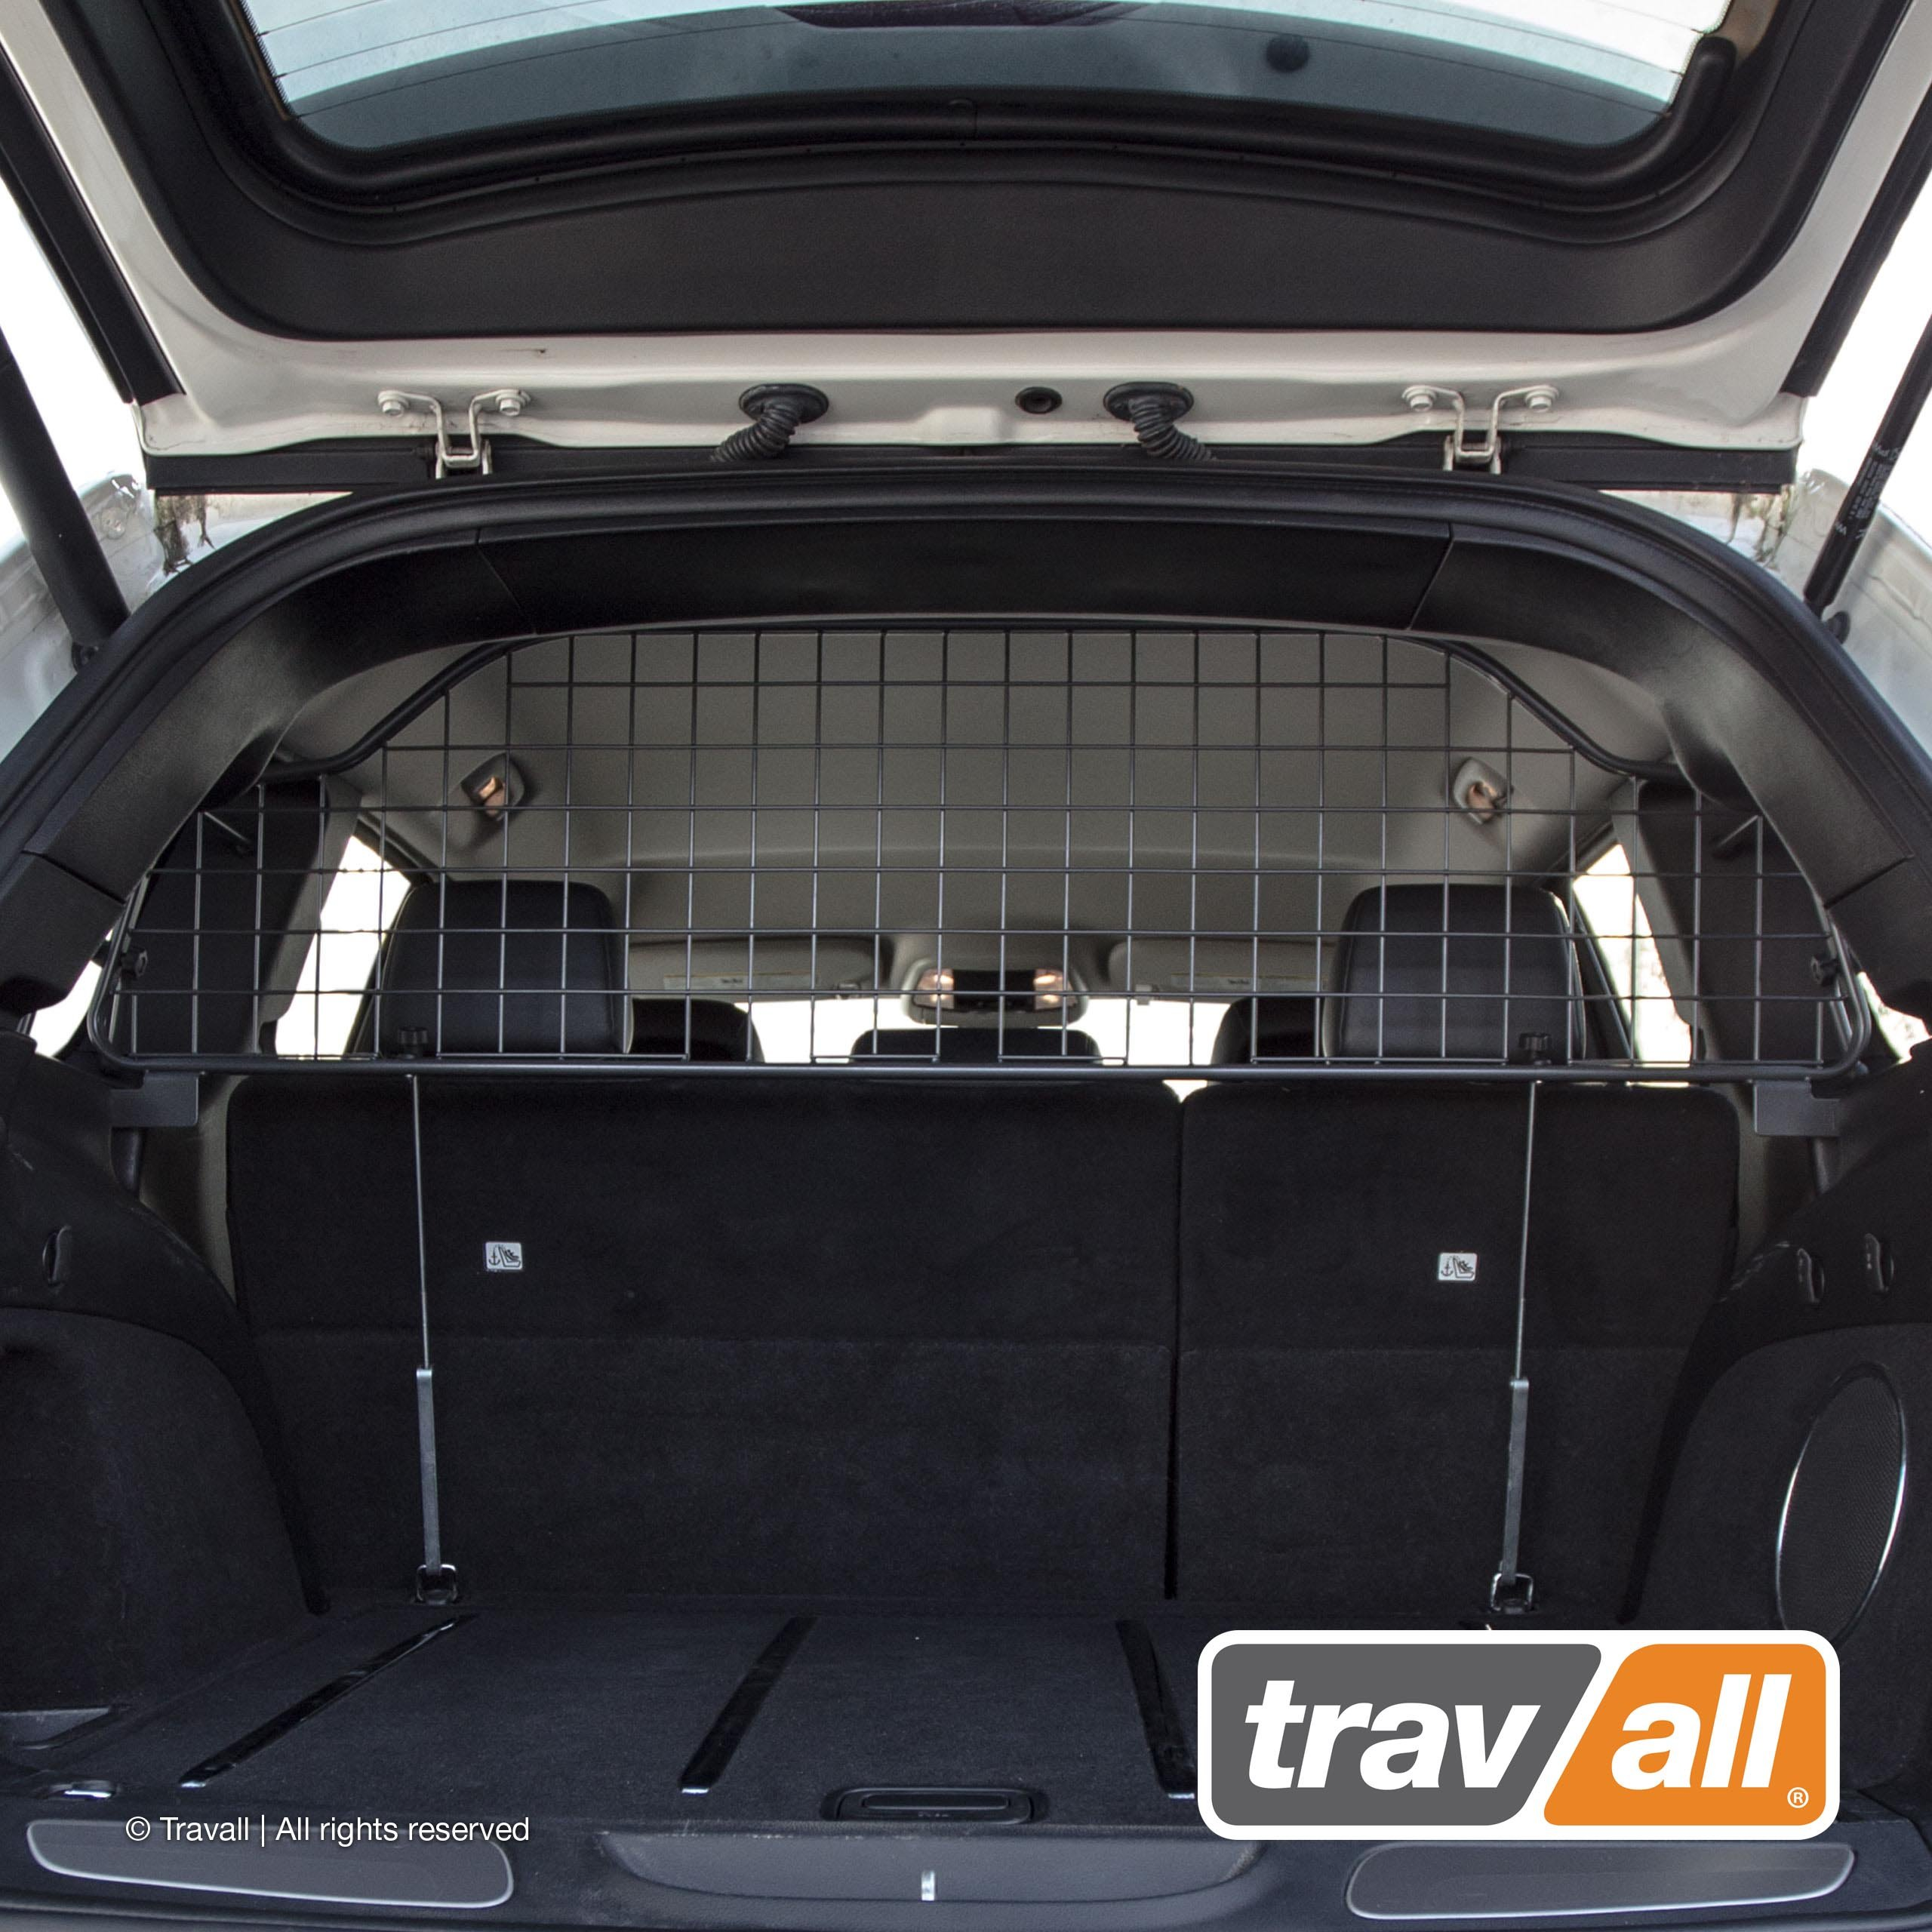 Travall Guard Compatible with Jeep Grand Cherokee (2010-Current) Grand Cherokee SRT (2011-Current) TDG1539 - Rattle-Free Steel Pet Barrier by Travall